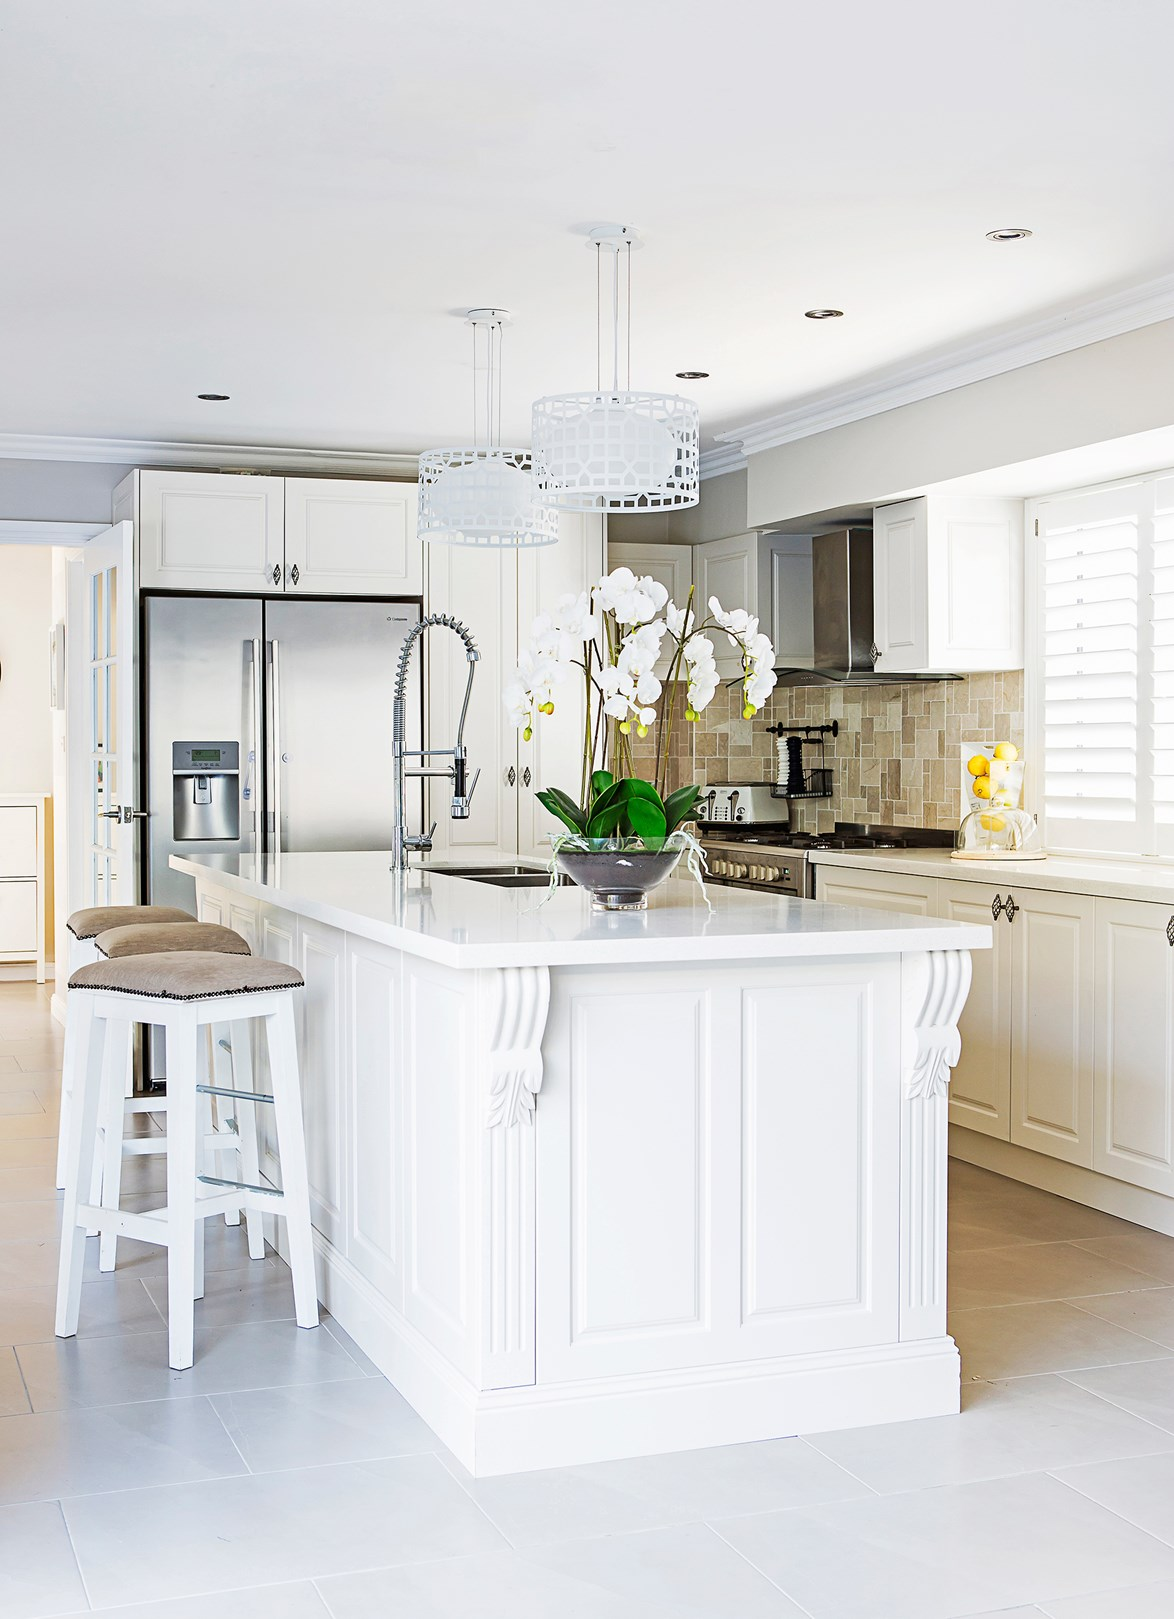 "Humble, but grand, is one way to summarise the French provincial look. This kitchen in a [stylishly renovated home](https://www.homestolove.com.au/cecilia-and-adrians-stylish-renovation-on-a-budget-2072 |target=""_blank""), features ornate cabinetry and sleek finishes but has, at the same time, been pared back with stools upholstered in earthy linen and a stone-tiled splashback. *Photo: Maree Homer*"